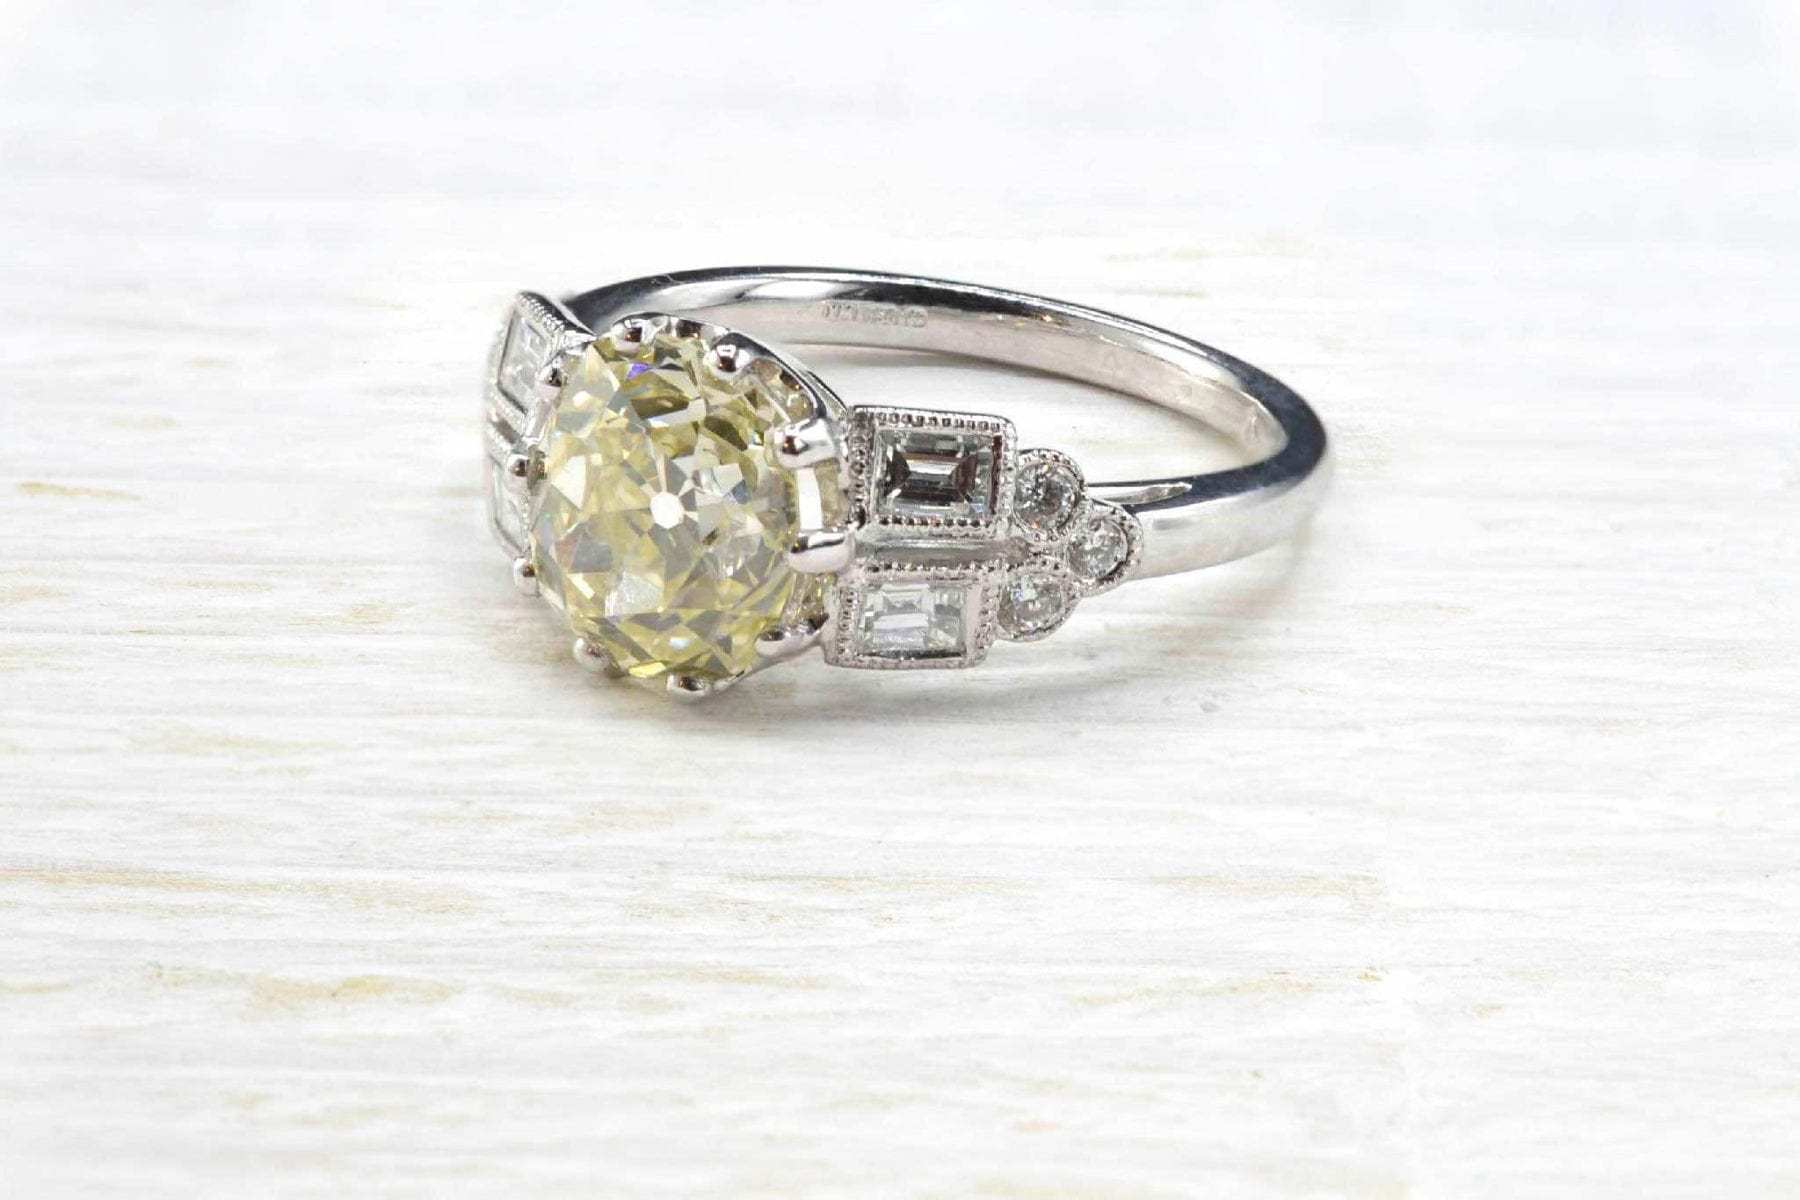 Cushion -cut diamond ring